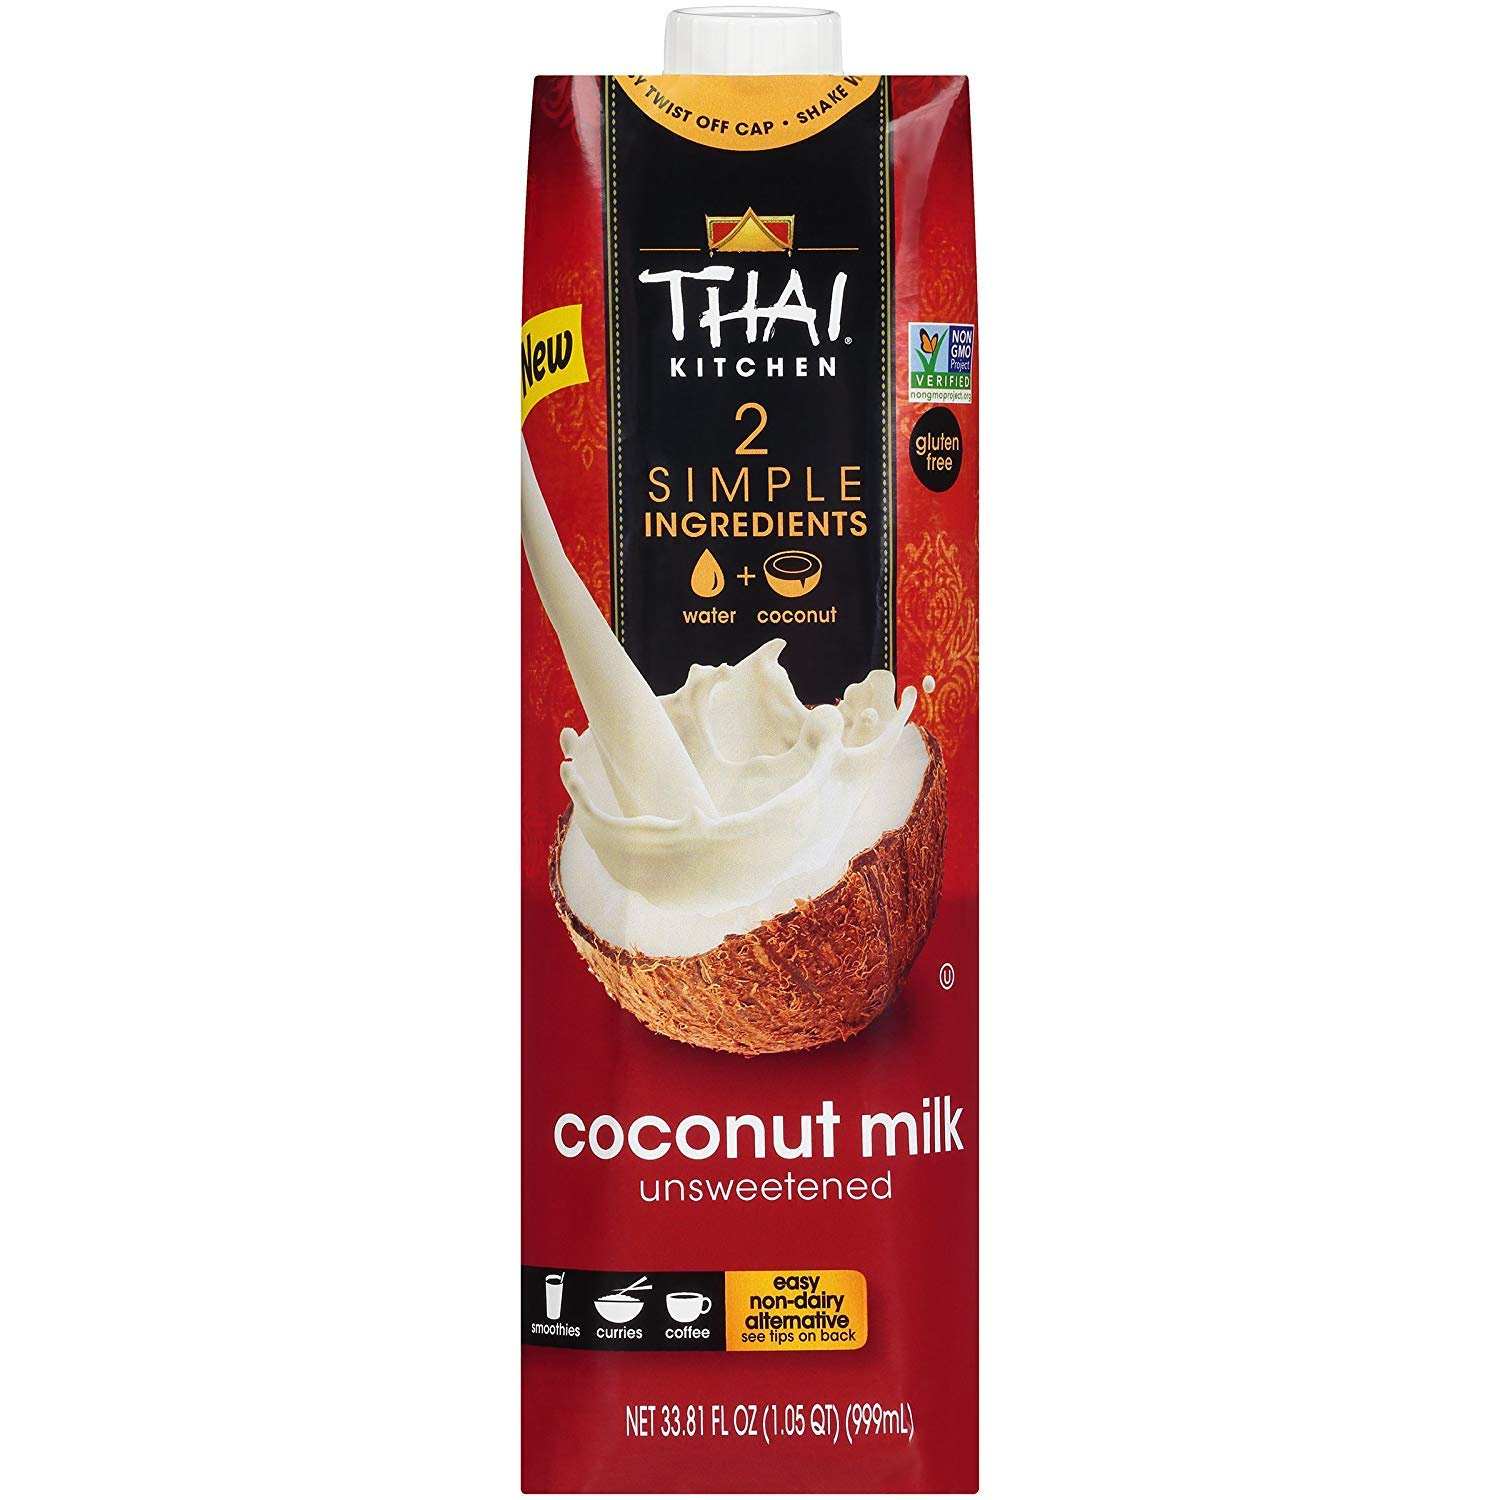 Thai Kitchen Dairy Free Coconut Milk (Resealable, Just Coconuts & Water, BPA Free Packaging, Unsweetened), 33.81 fl oz (Pack of 1)